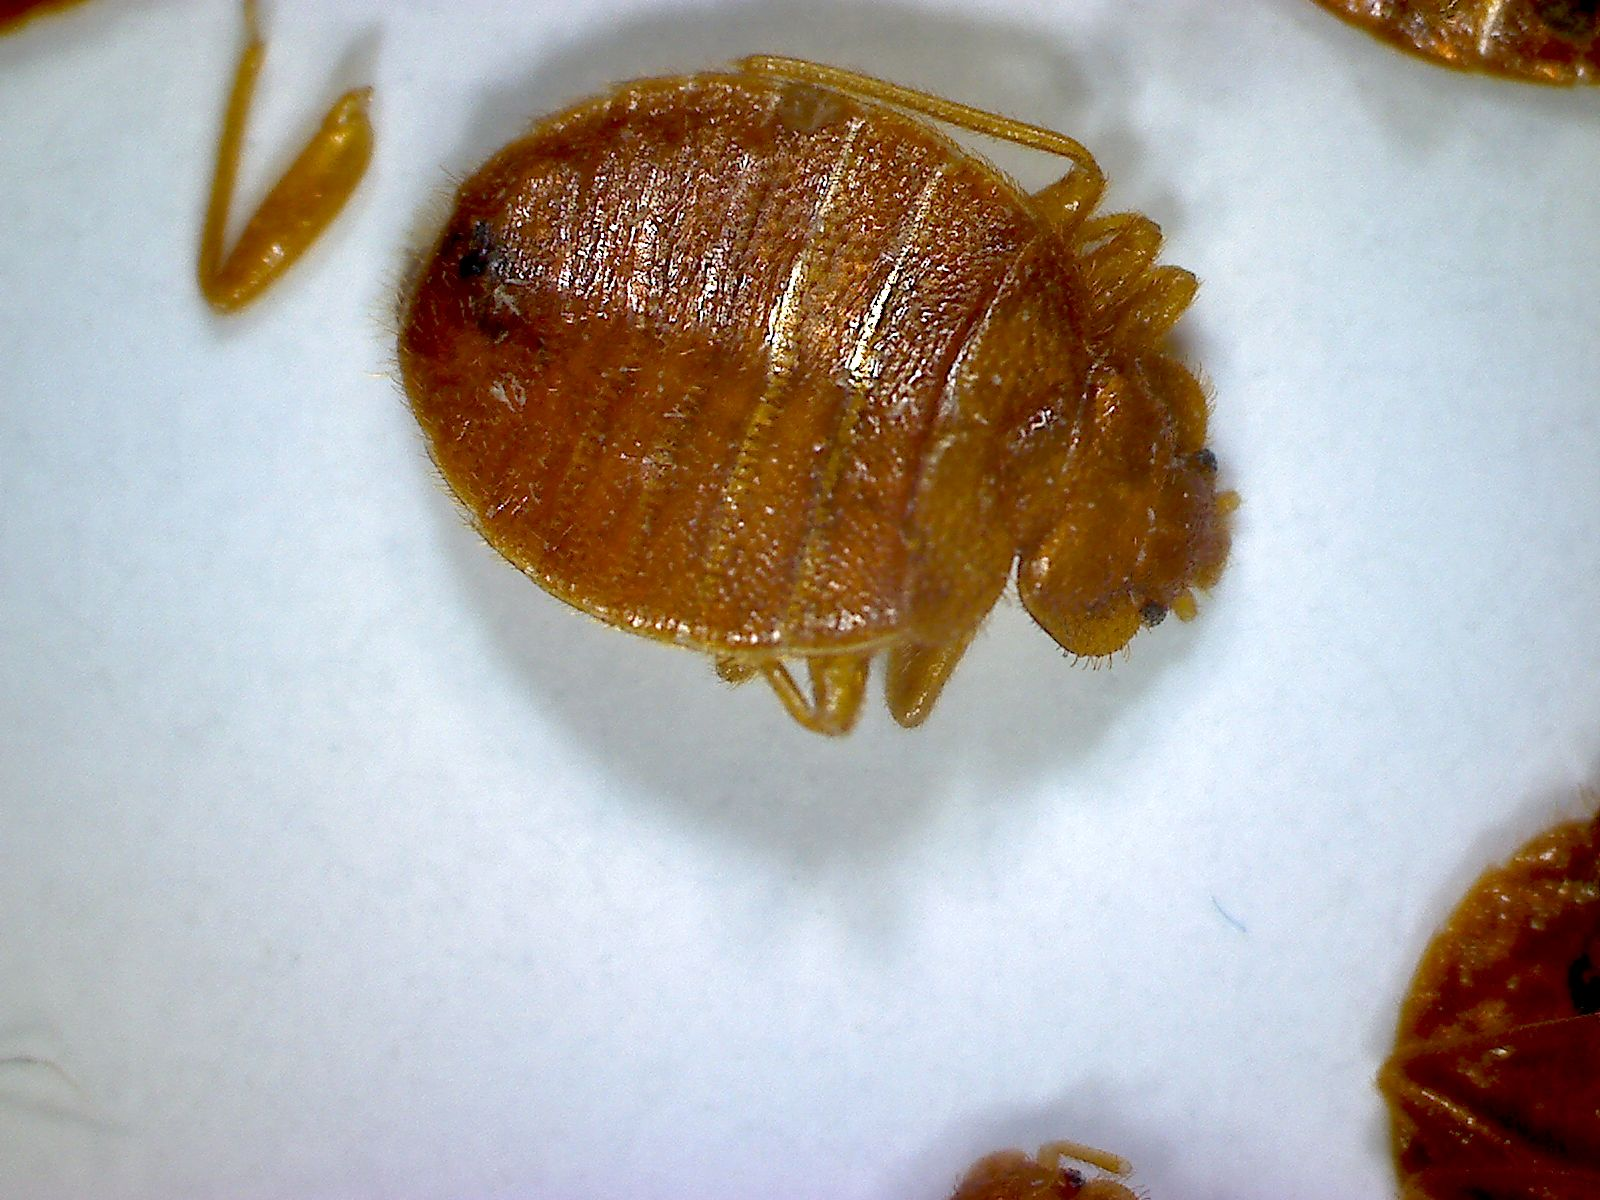 Zarbeco-MiScope-Megapixel-2-bedbugs